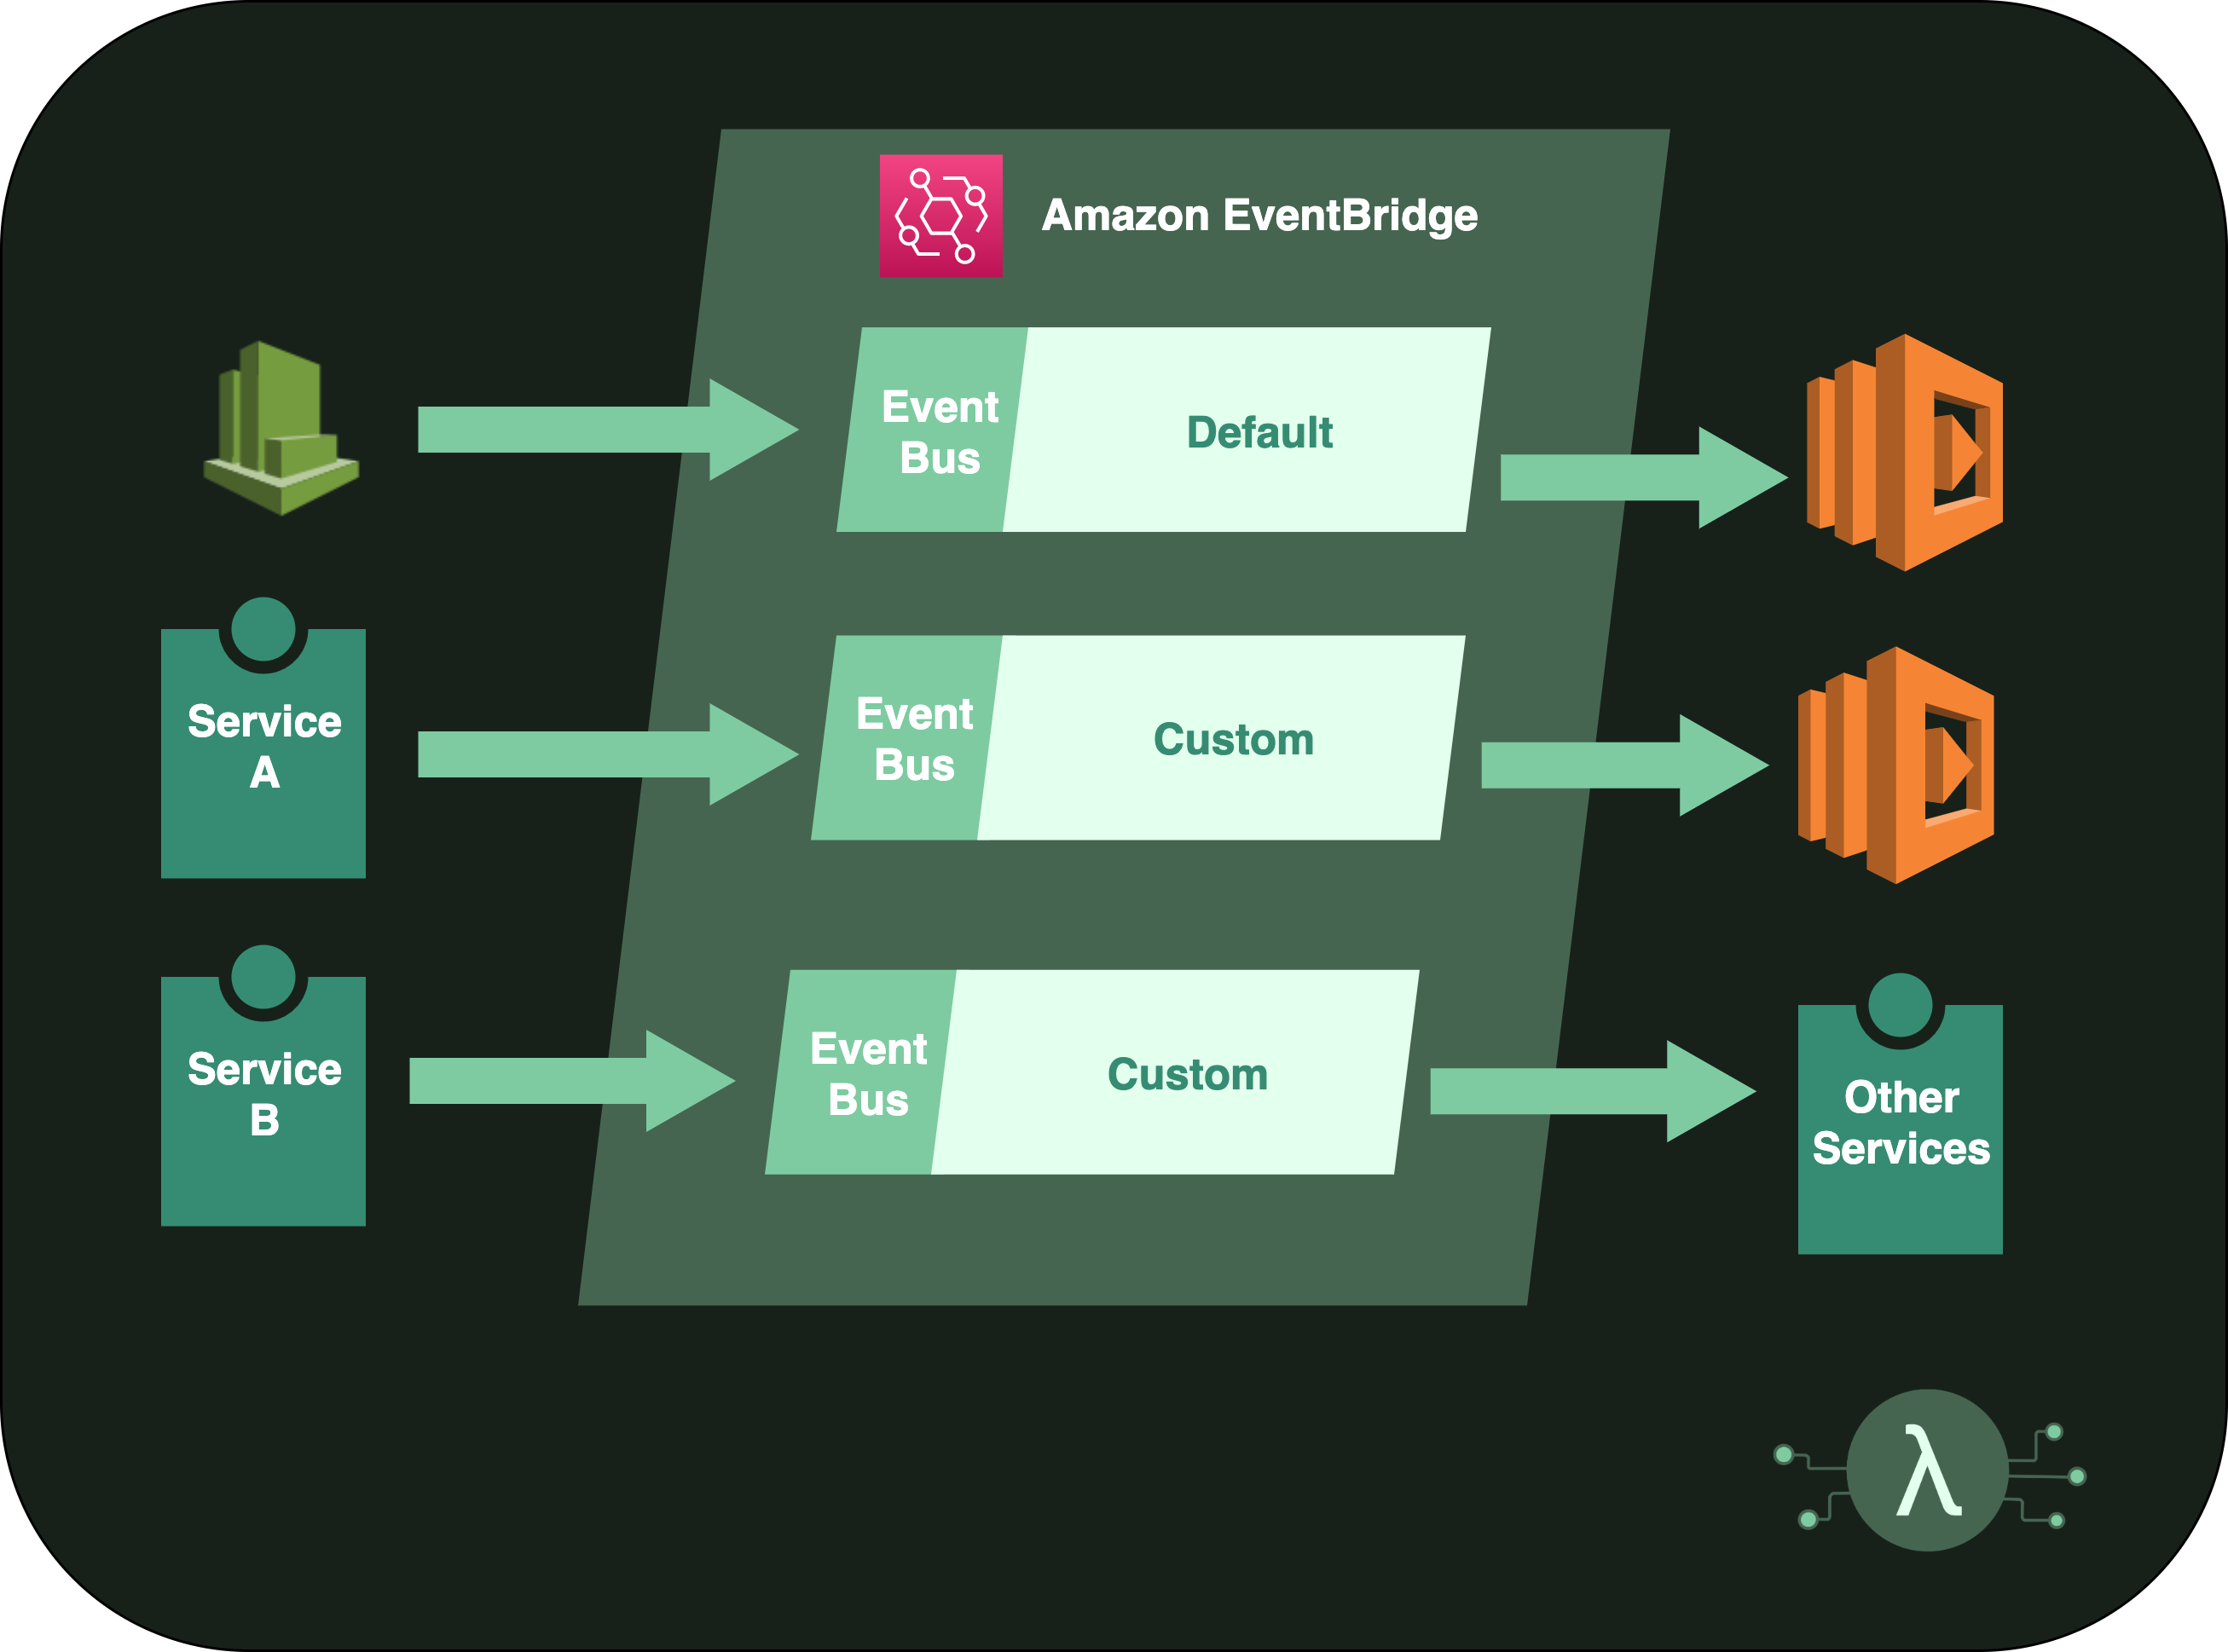 Diagram showing Amazon EventBridge Services with multiple buses and services publishing with Lambdas consuming.